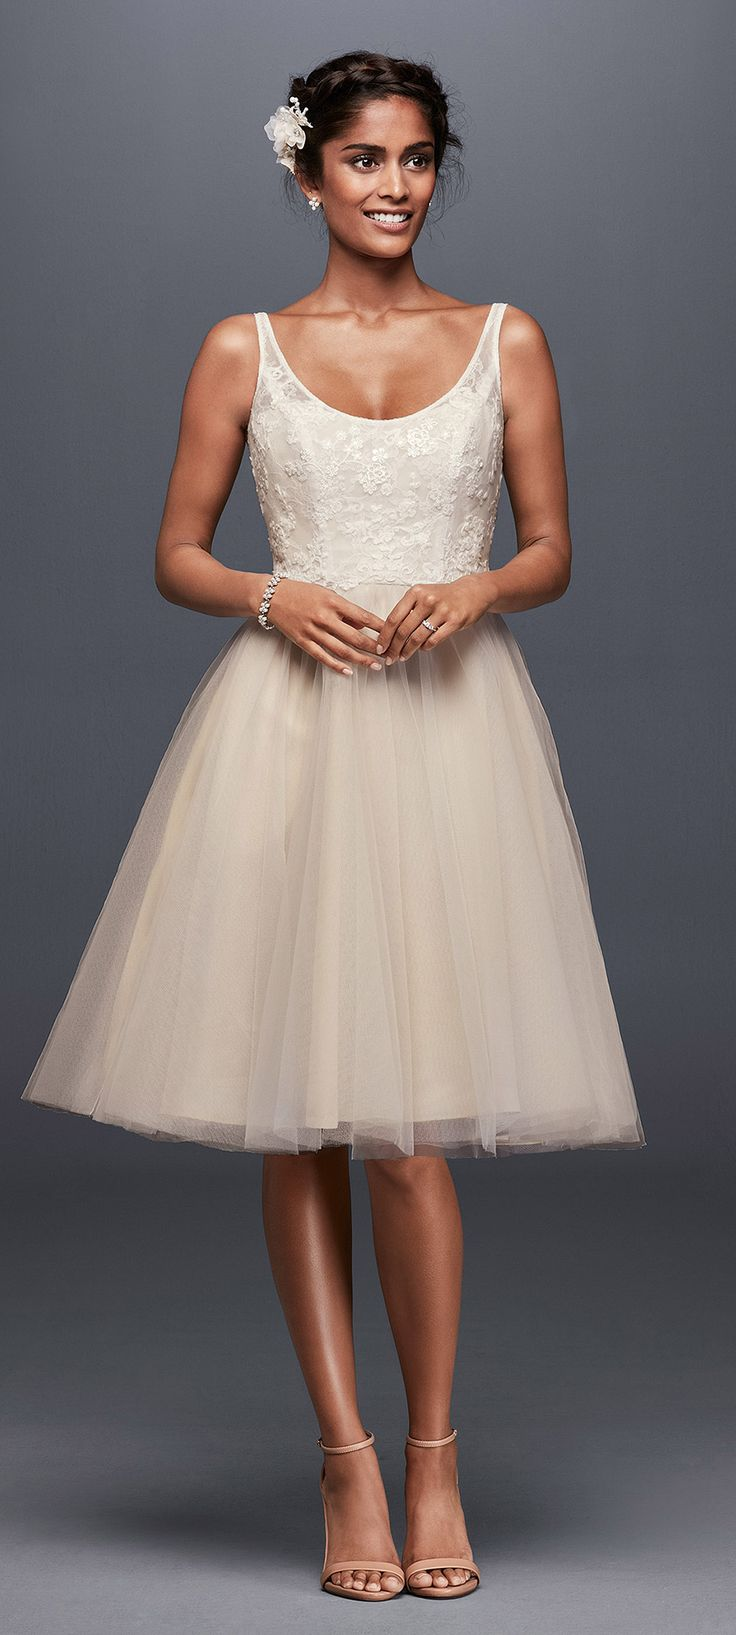 Tulle and Embroidered Lace Short Wedding Dress | David's Bridal Spring 2017 @davidsbridal #davidsbridal #galina #ad #wedding #bridal #shortweddingdress